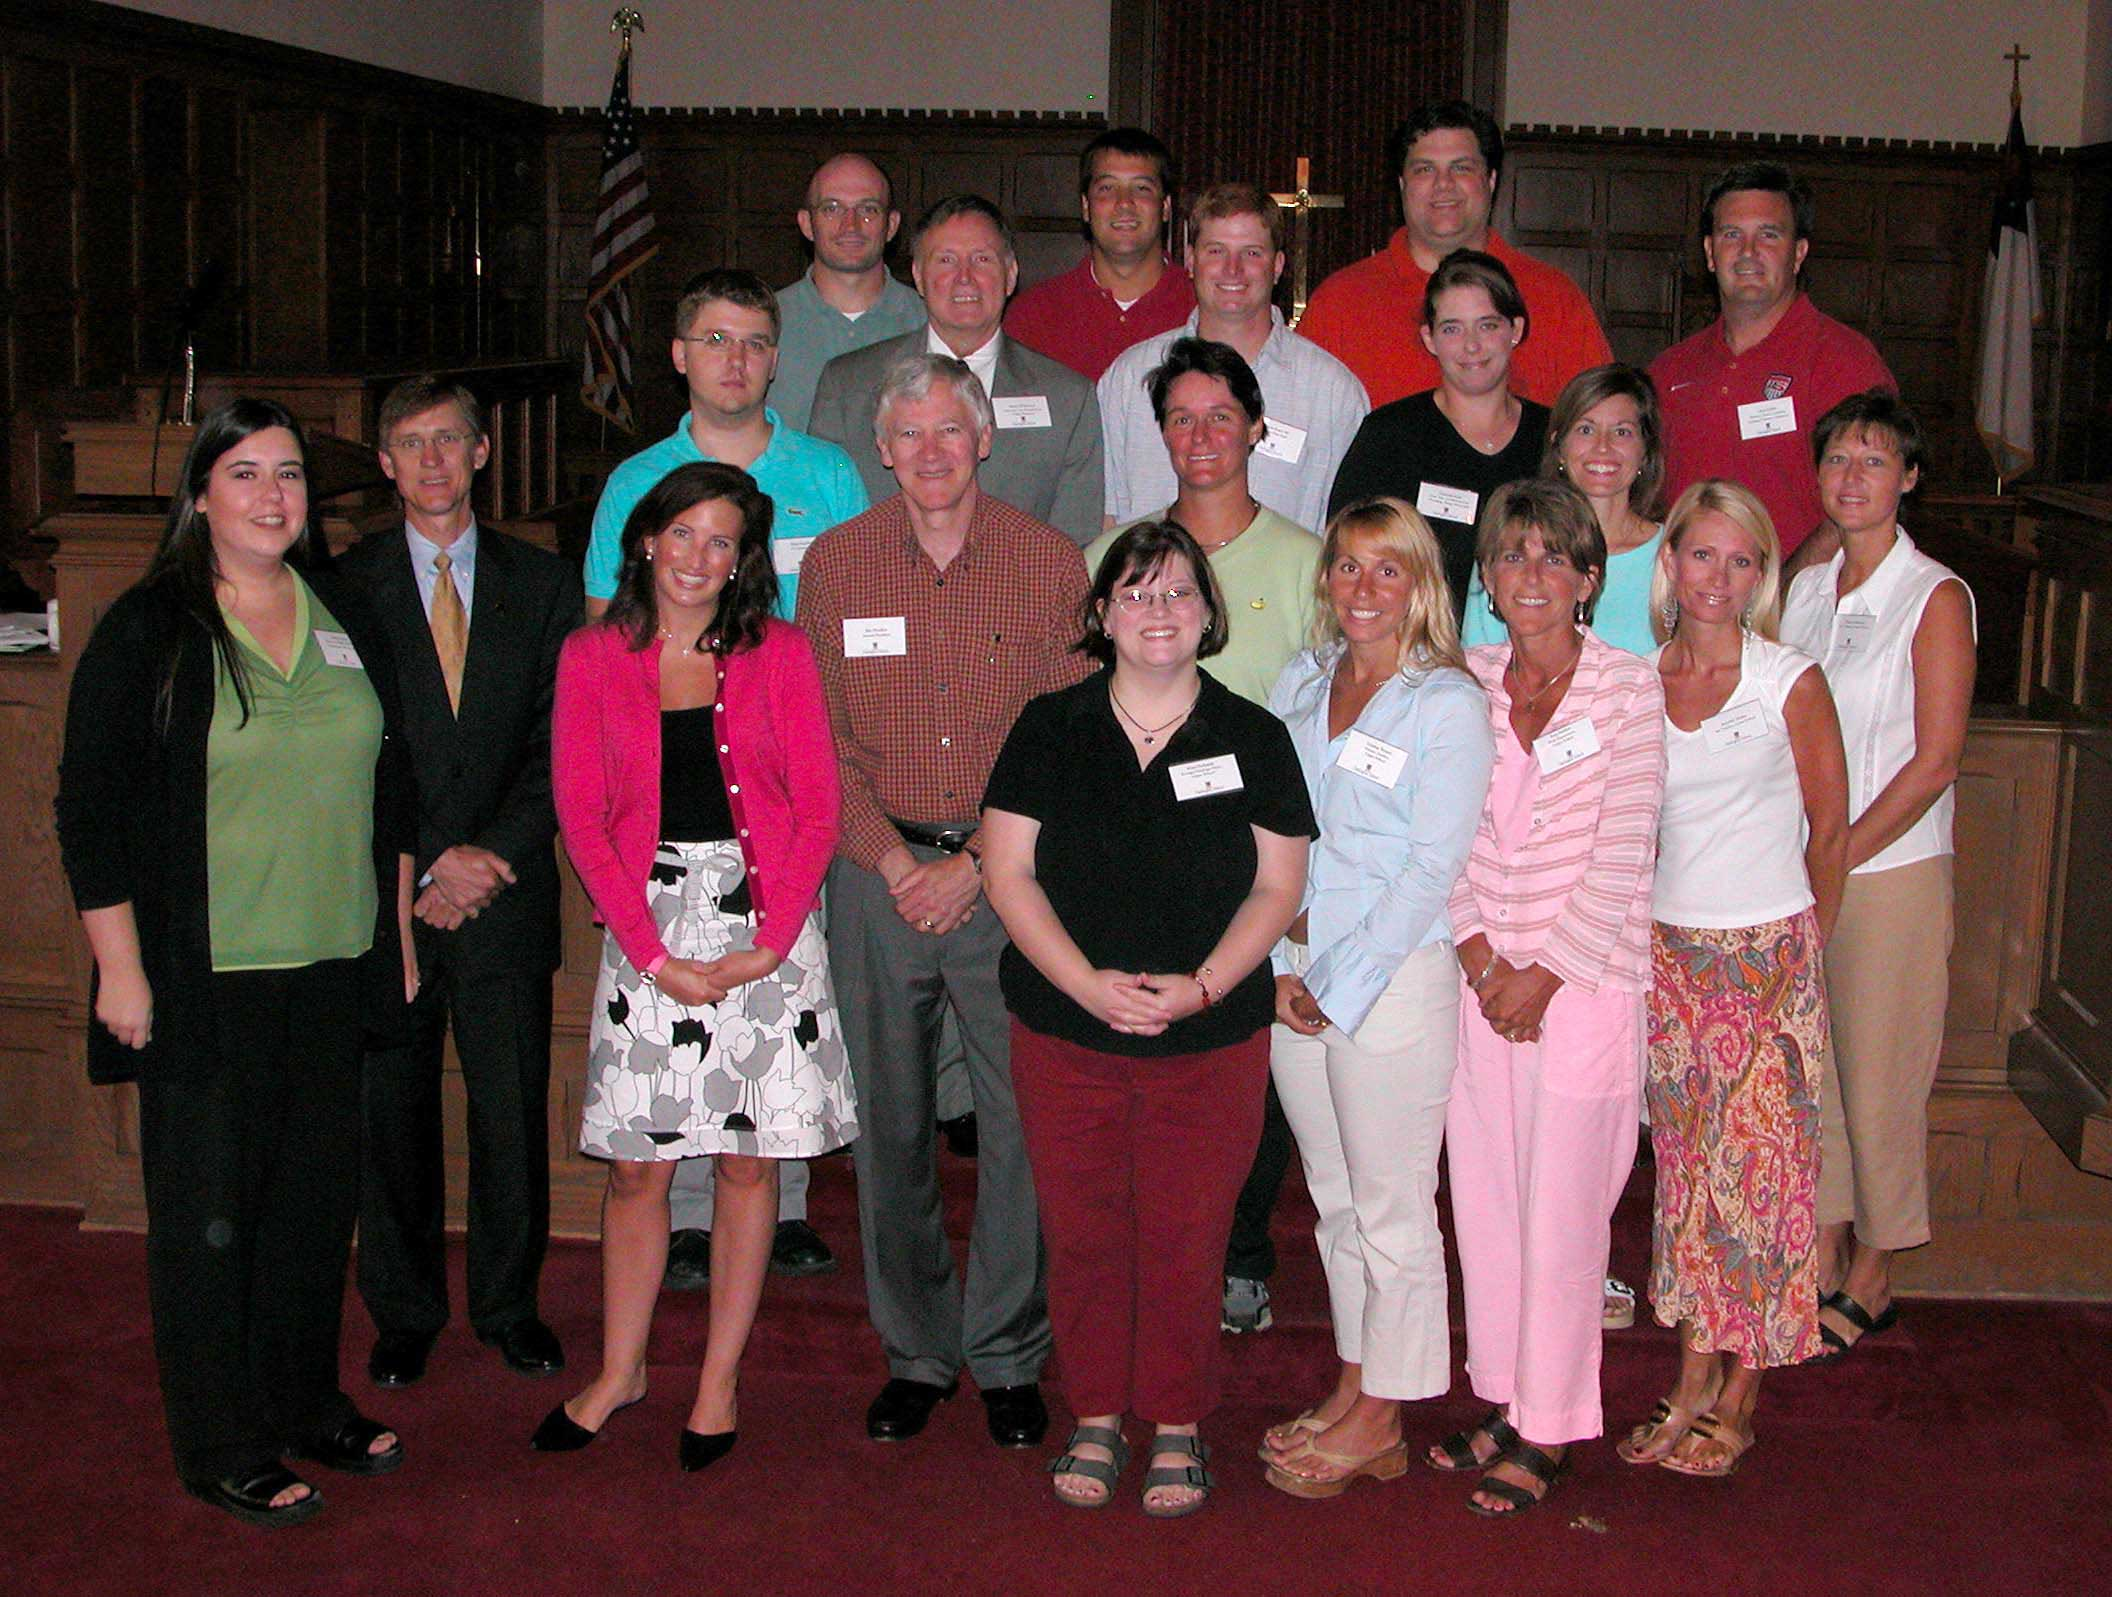 Darlington School: Getting to know new faculty and staff members